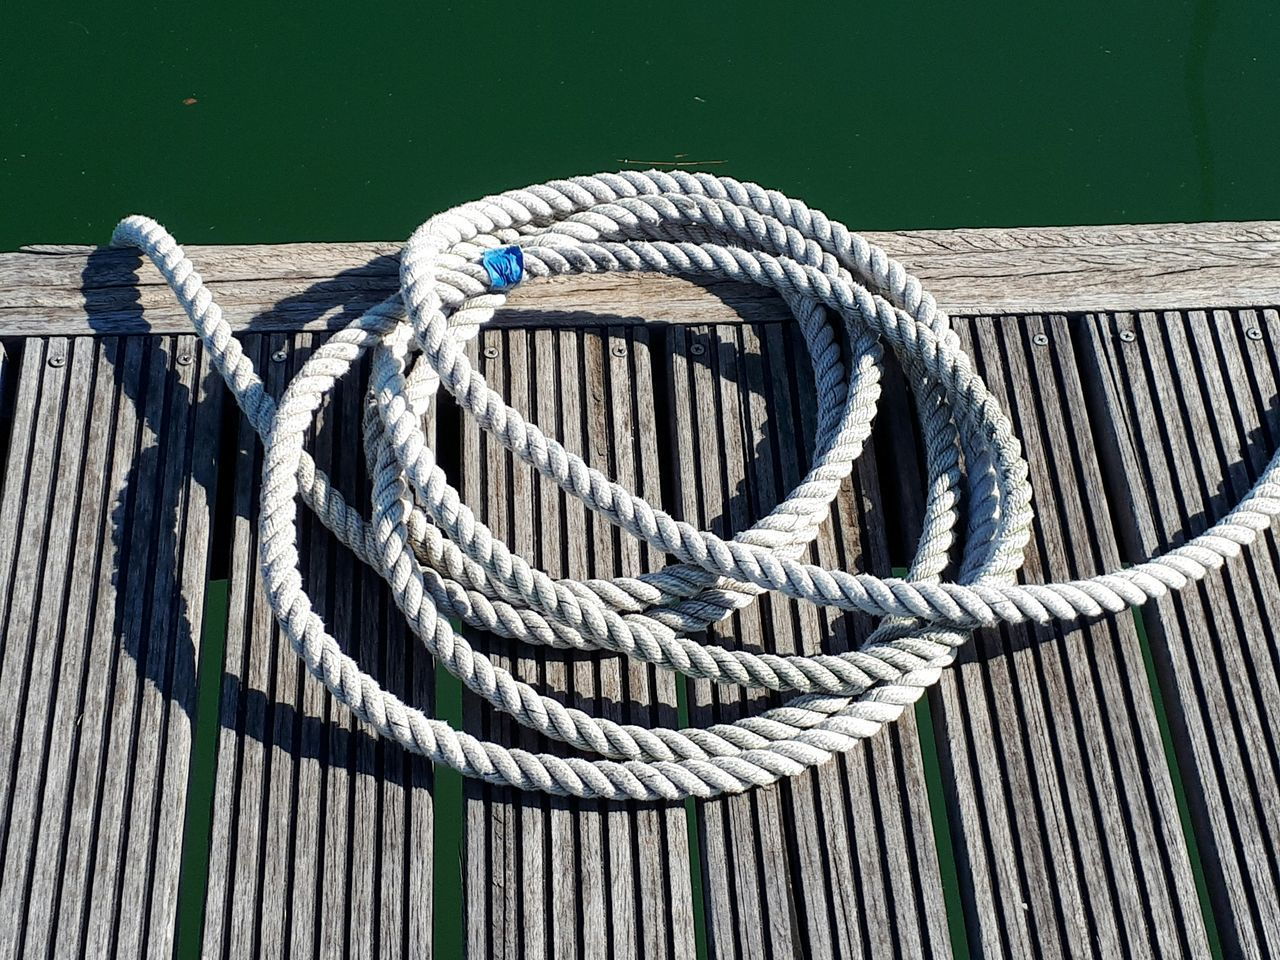 Rope Day Outdoors No People Close-up Ship Ropes Rope Nautical Ship Rope Nautical Equipment Summer Nautic Club